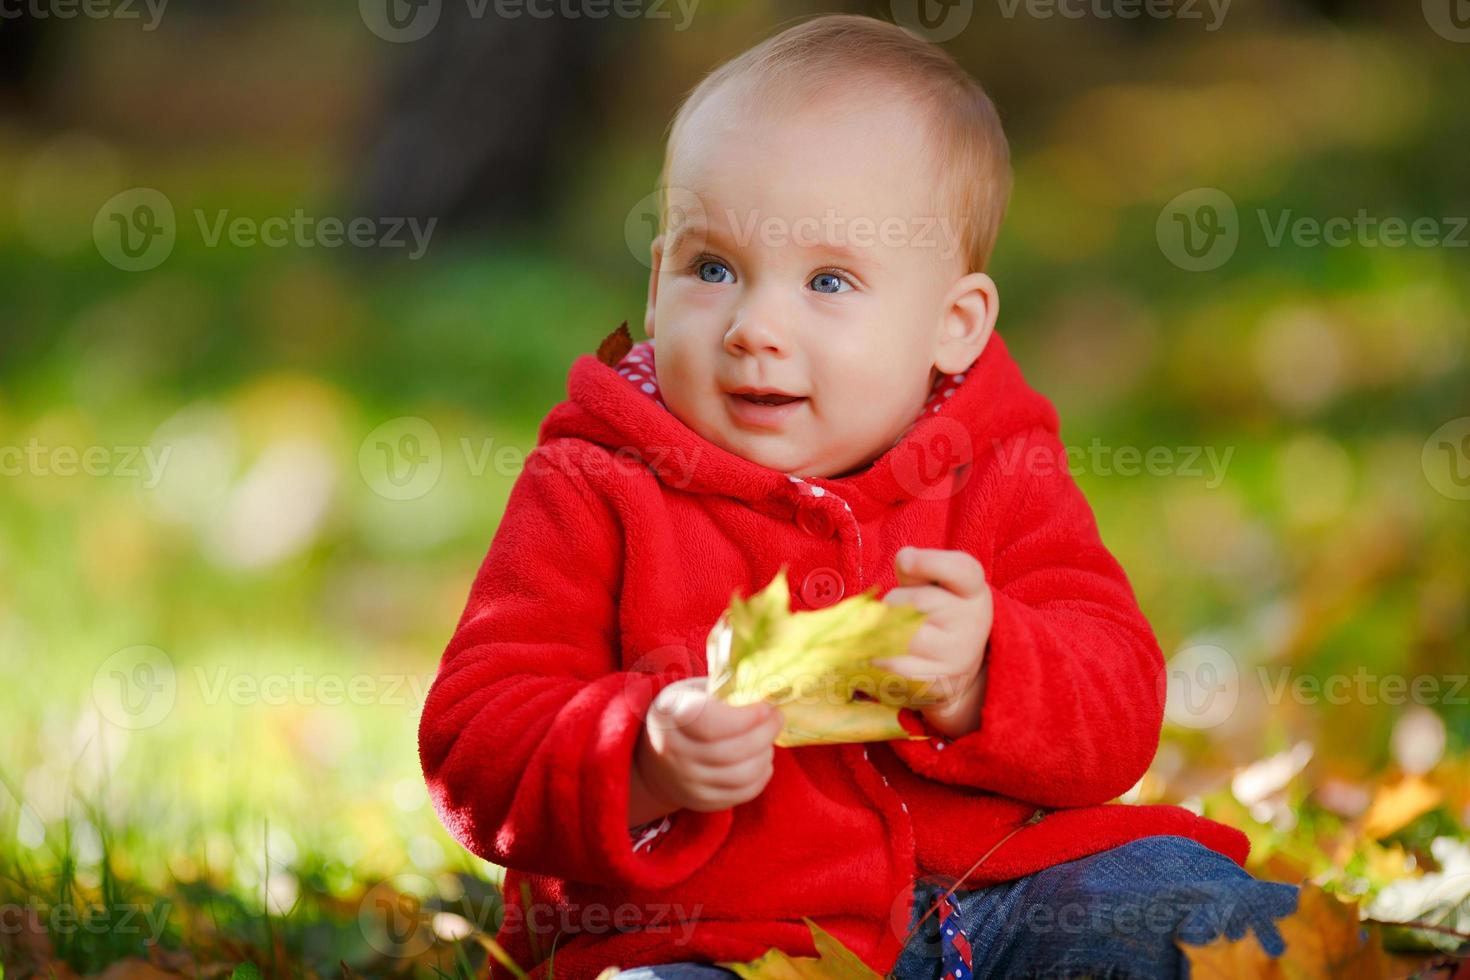 Cheerful baby in a red dress playing with yellow leaves photo